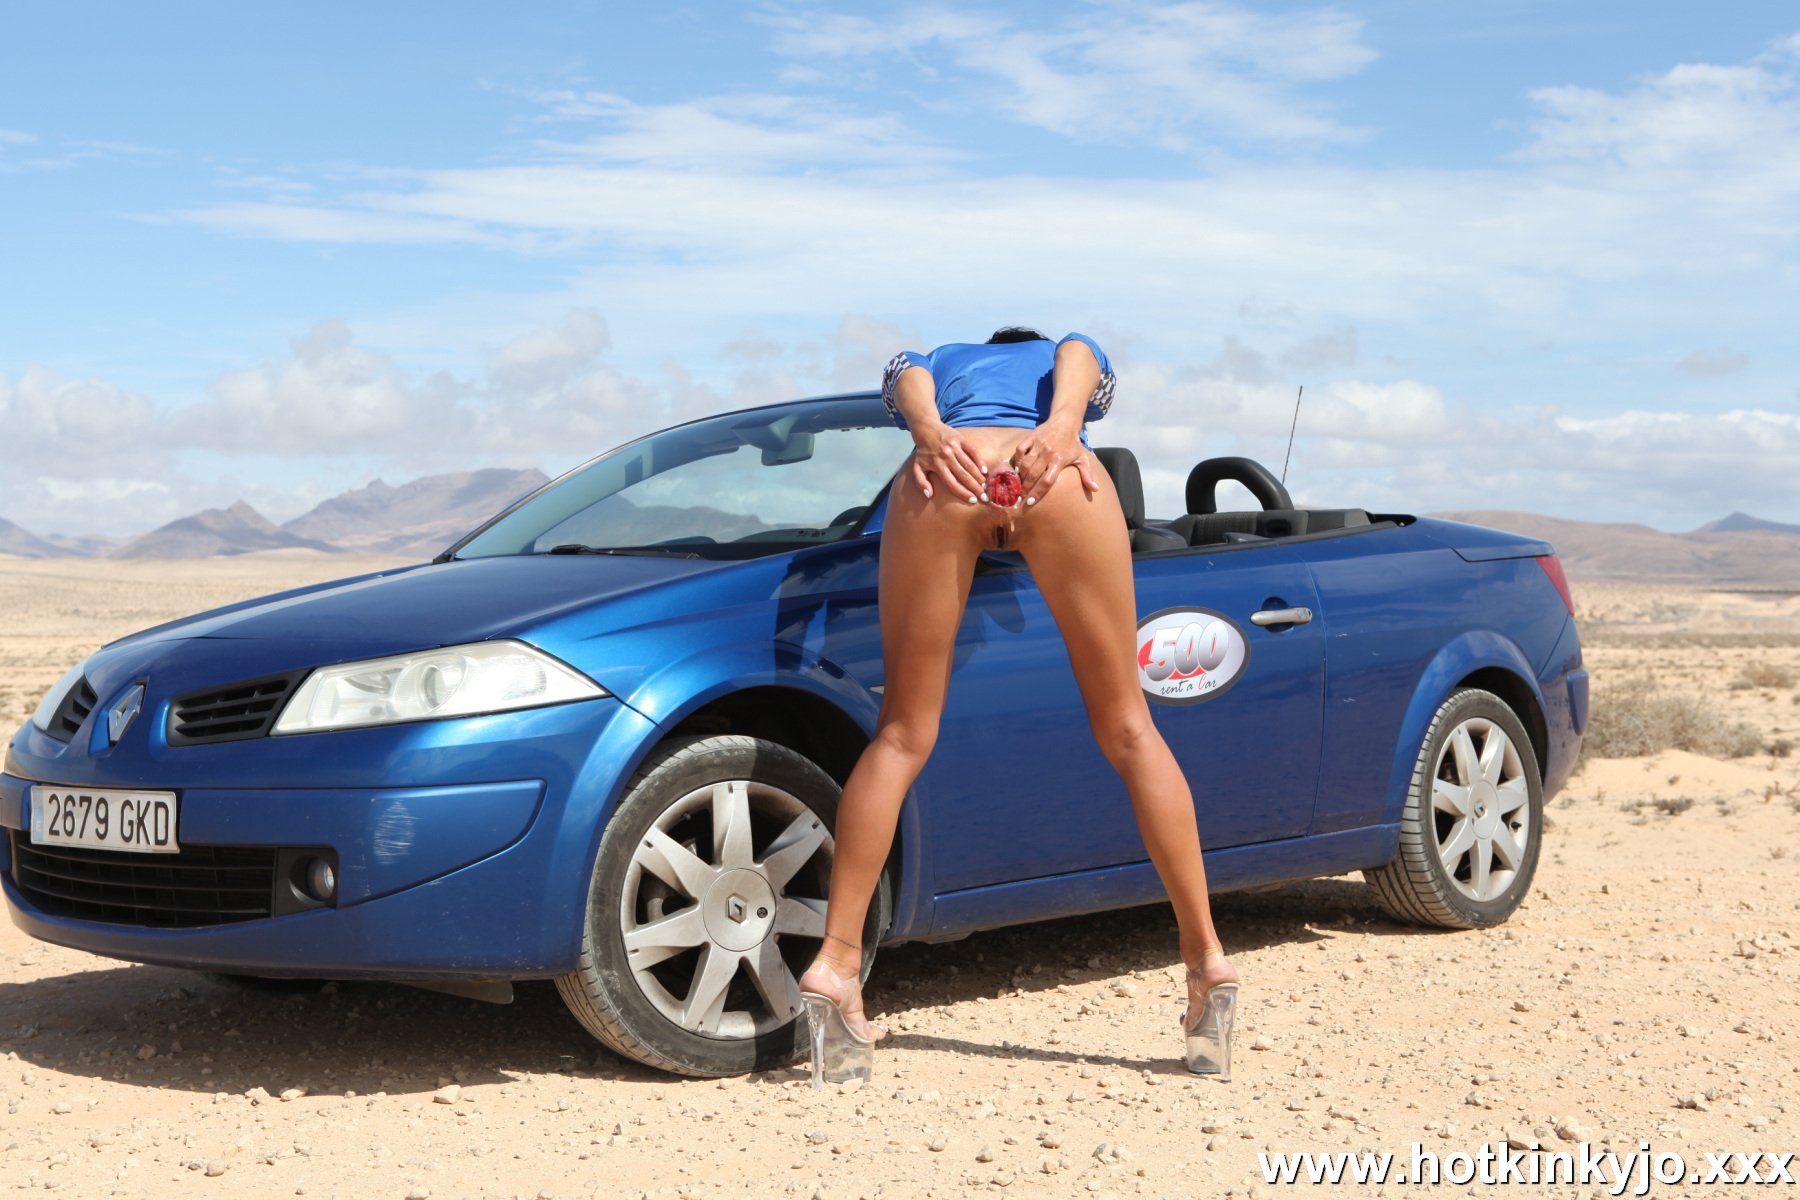 [HotKinkyJo] Car, desert and hardcore self anal punching